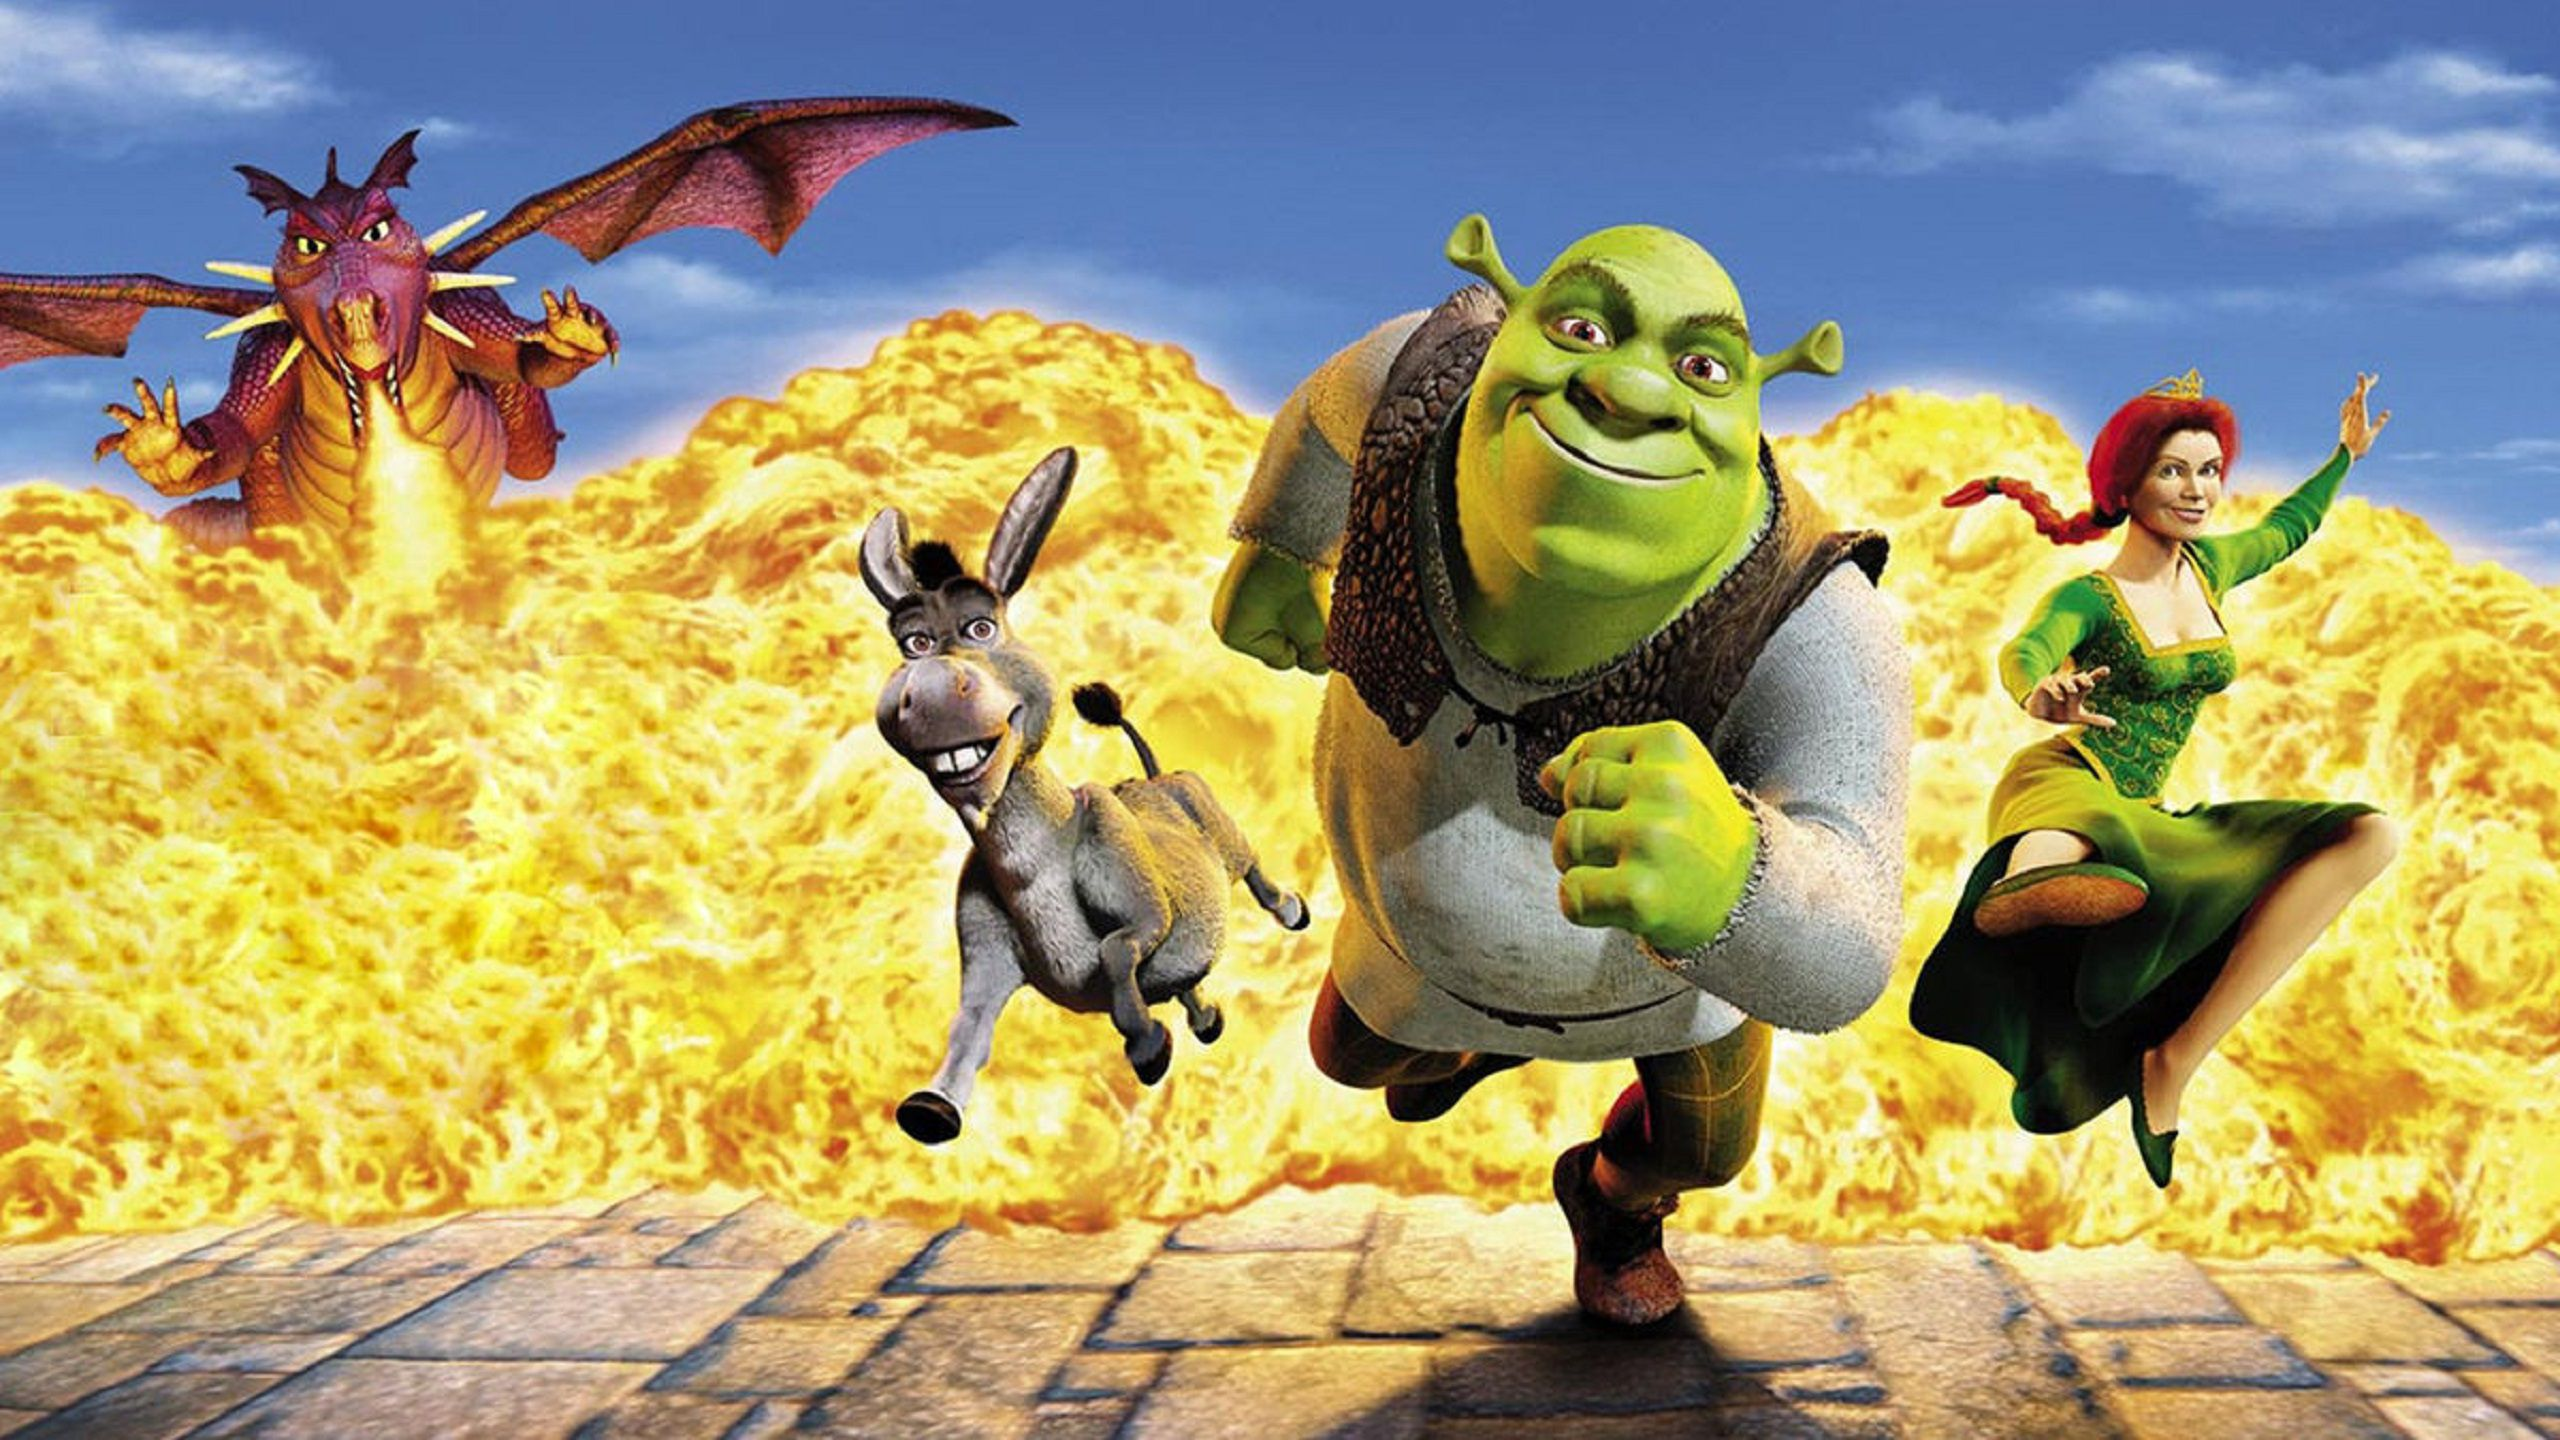 Shrek running